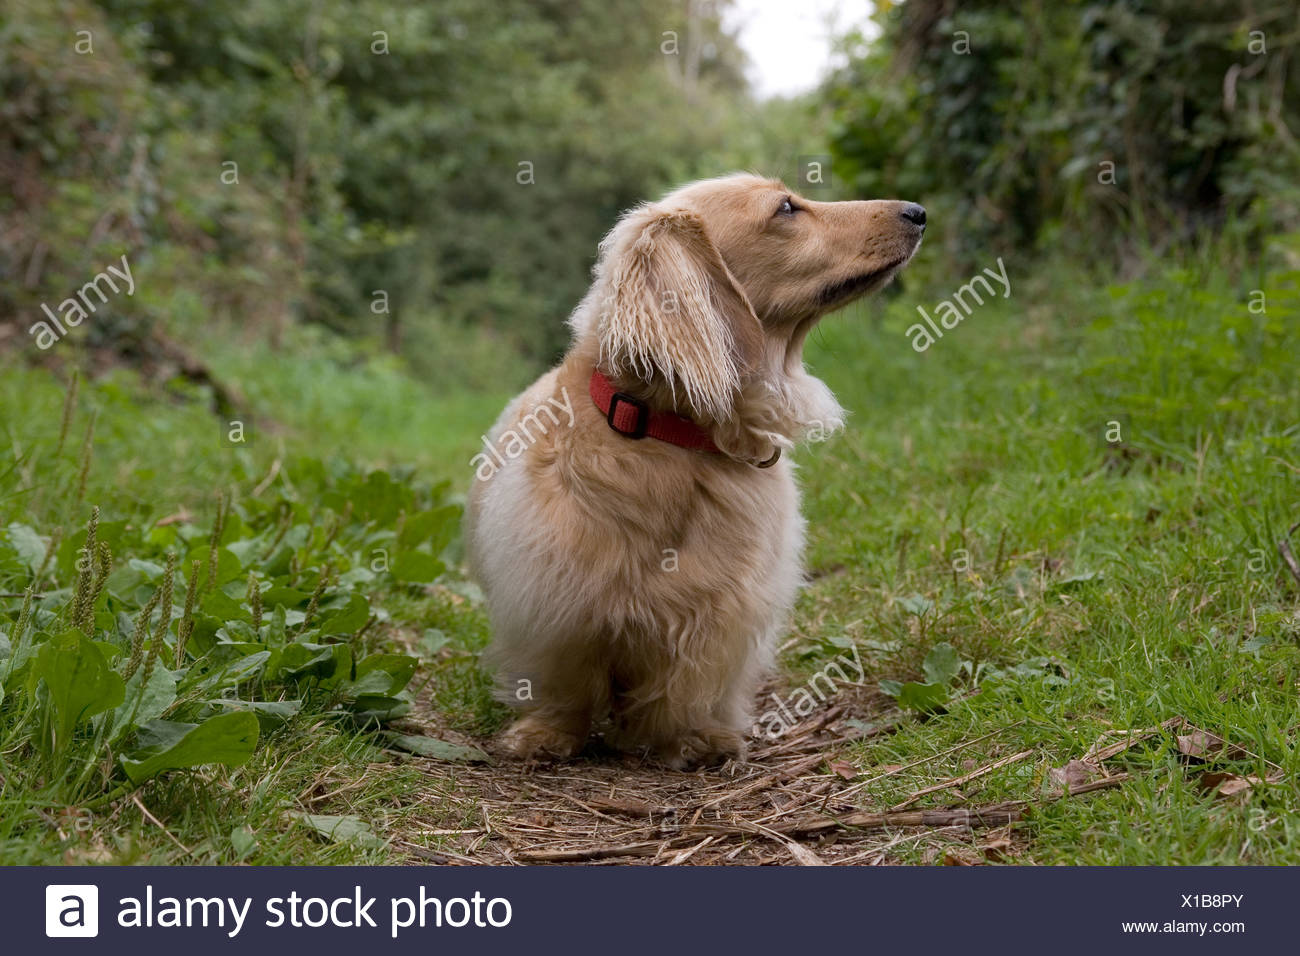 fawn coloured long haired Daschund walking in countryside - Stock Image